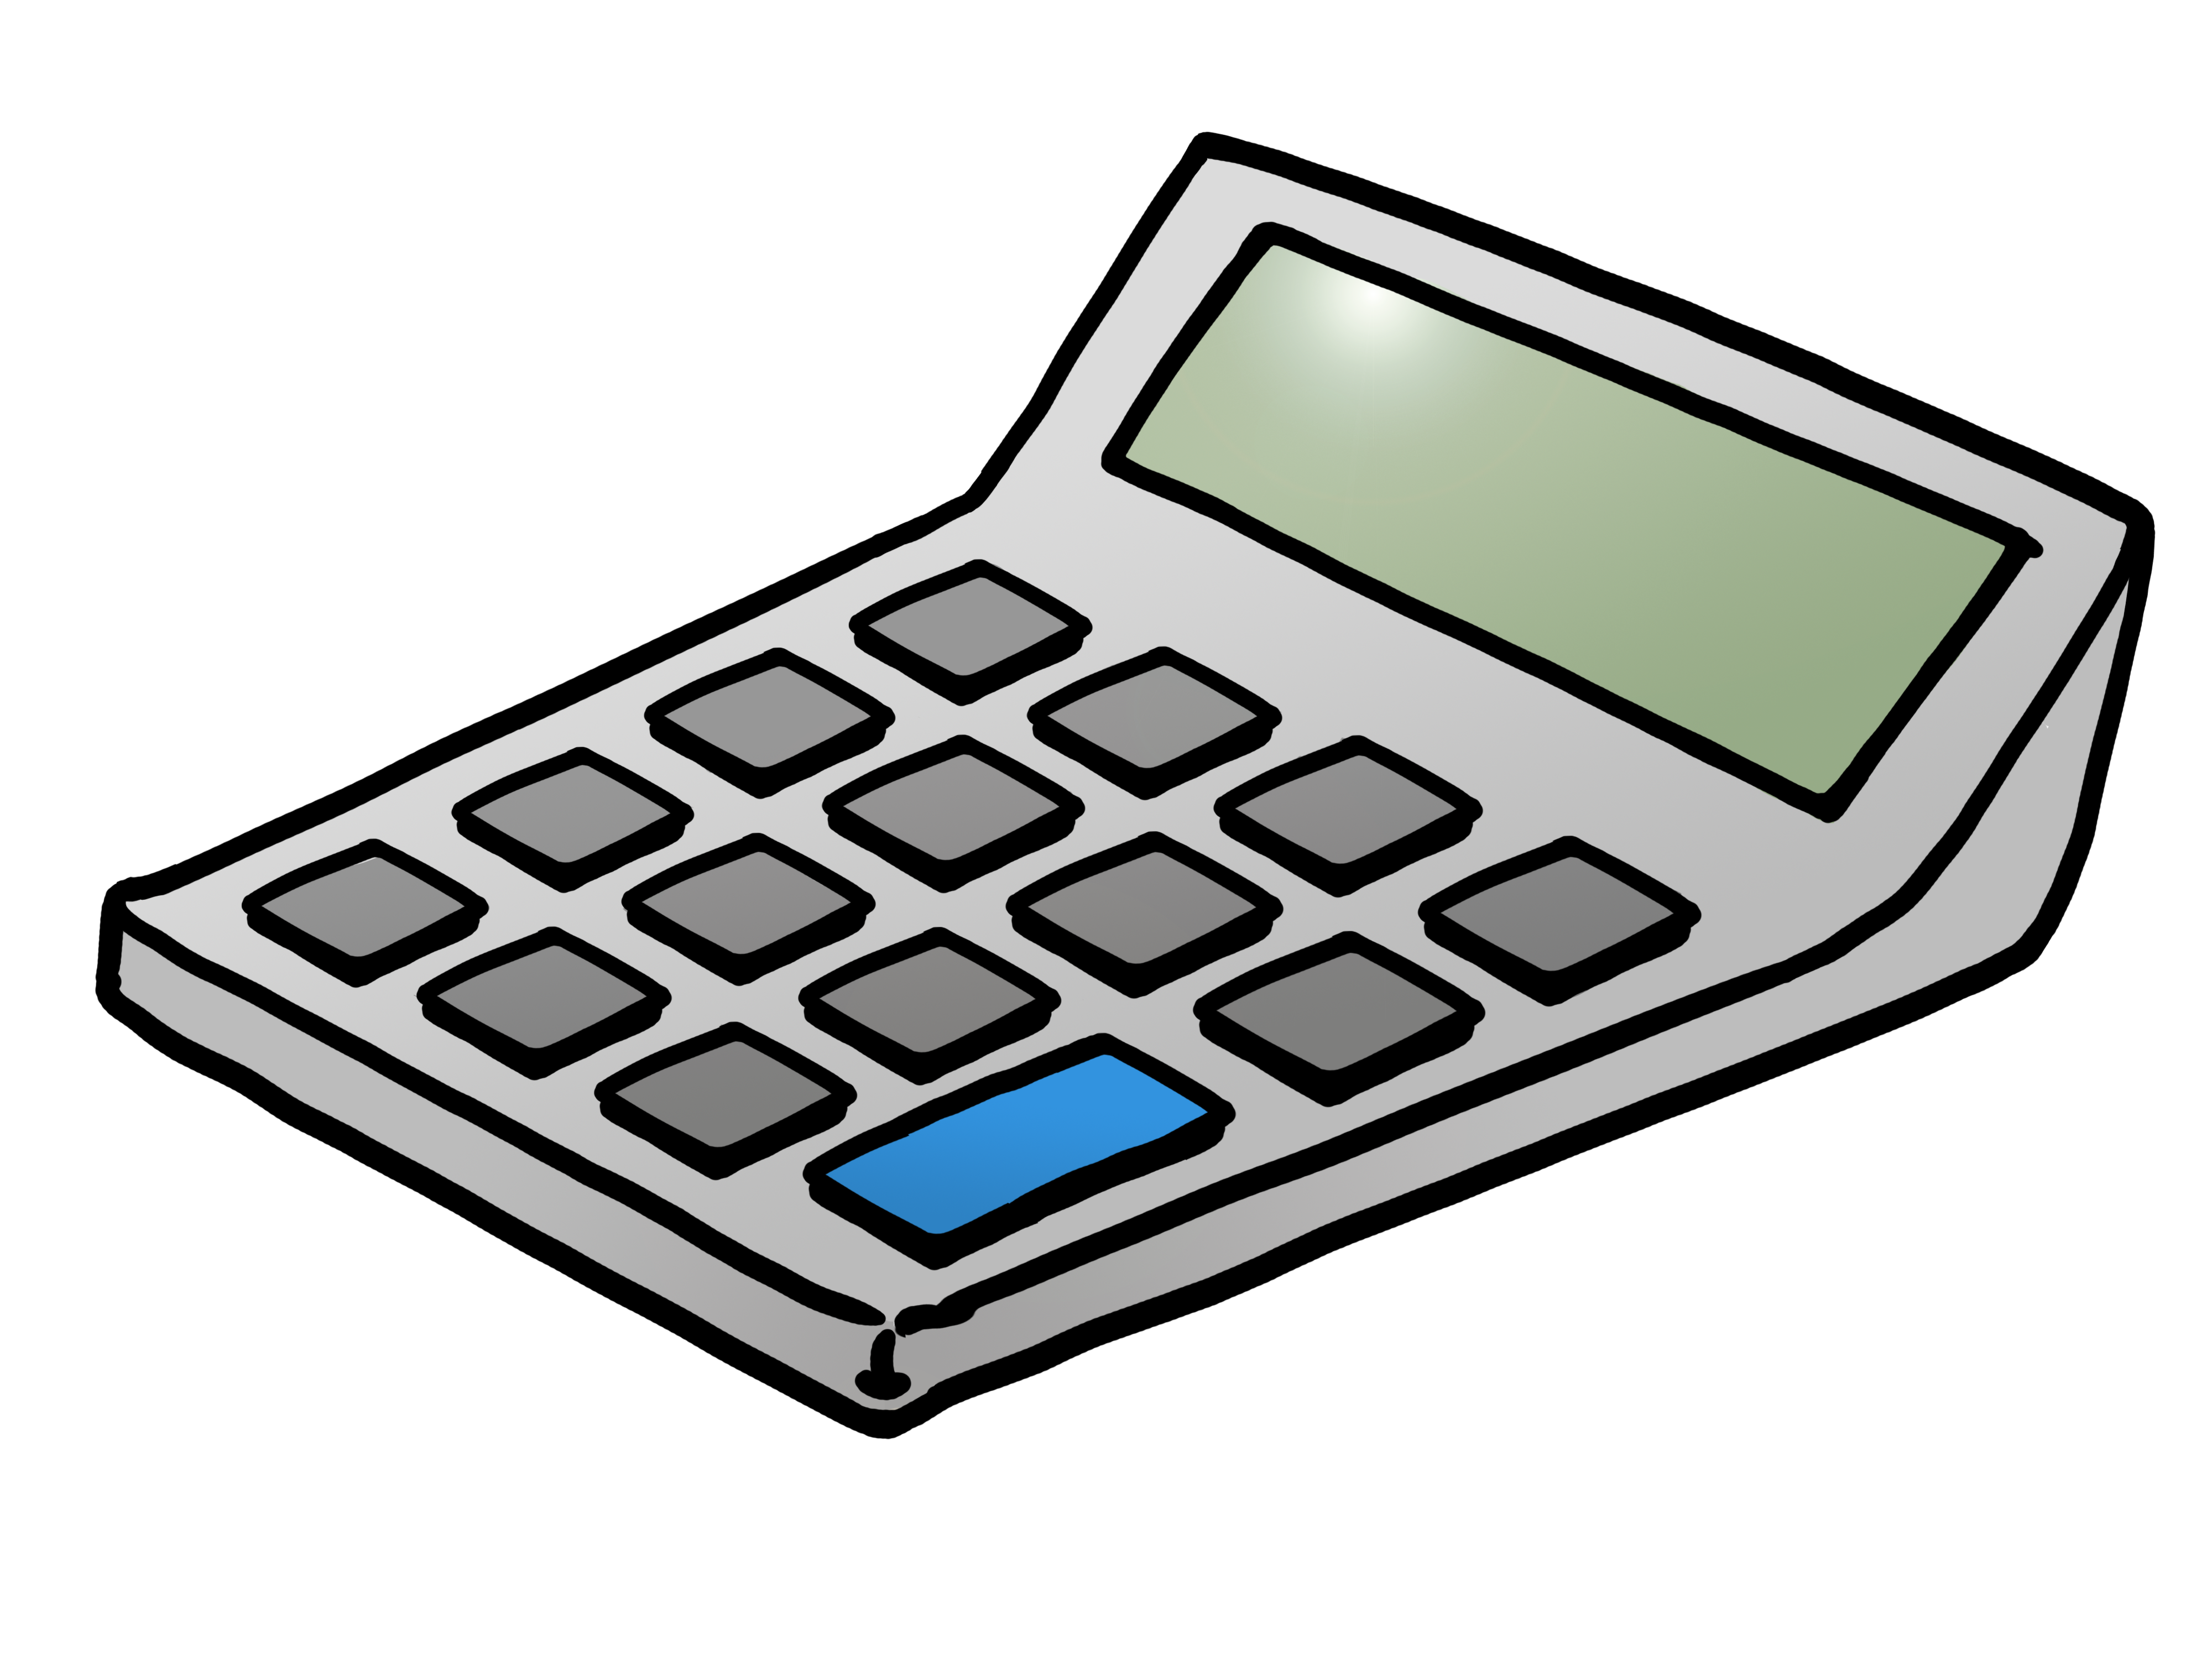 Money and calculator clipart vector free 28+ Collection of No Calculator Clipart | High quality, free ... vector free